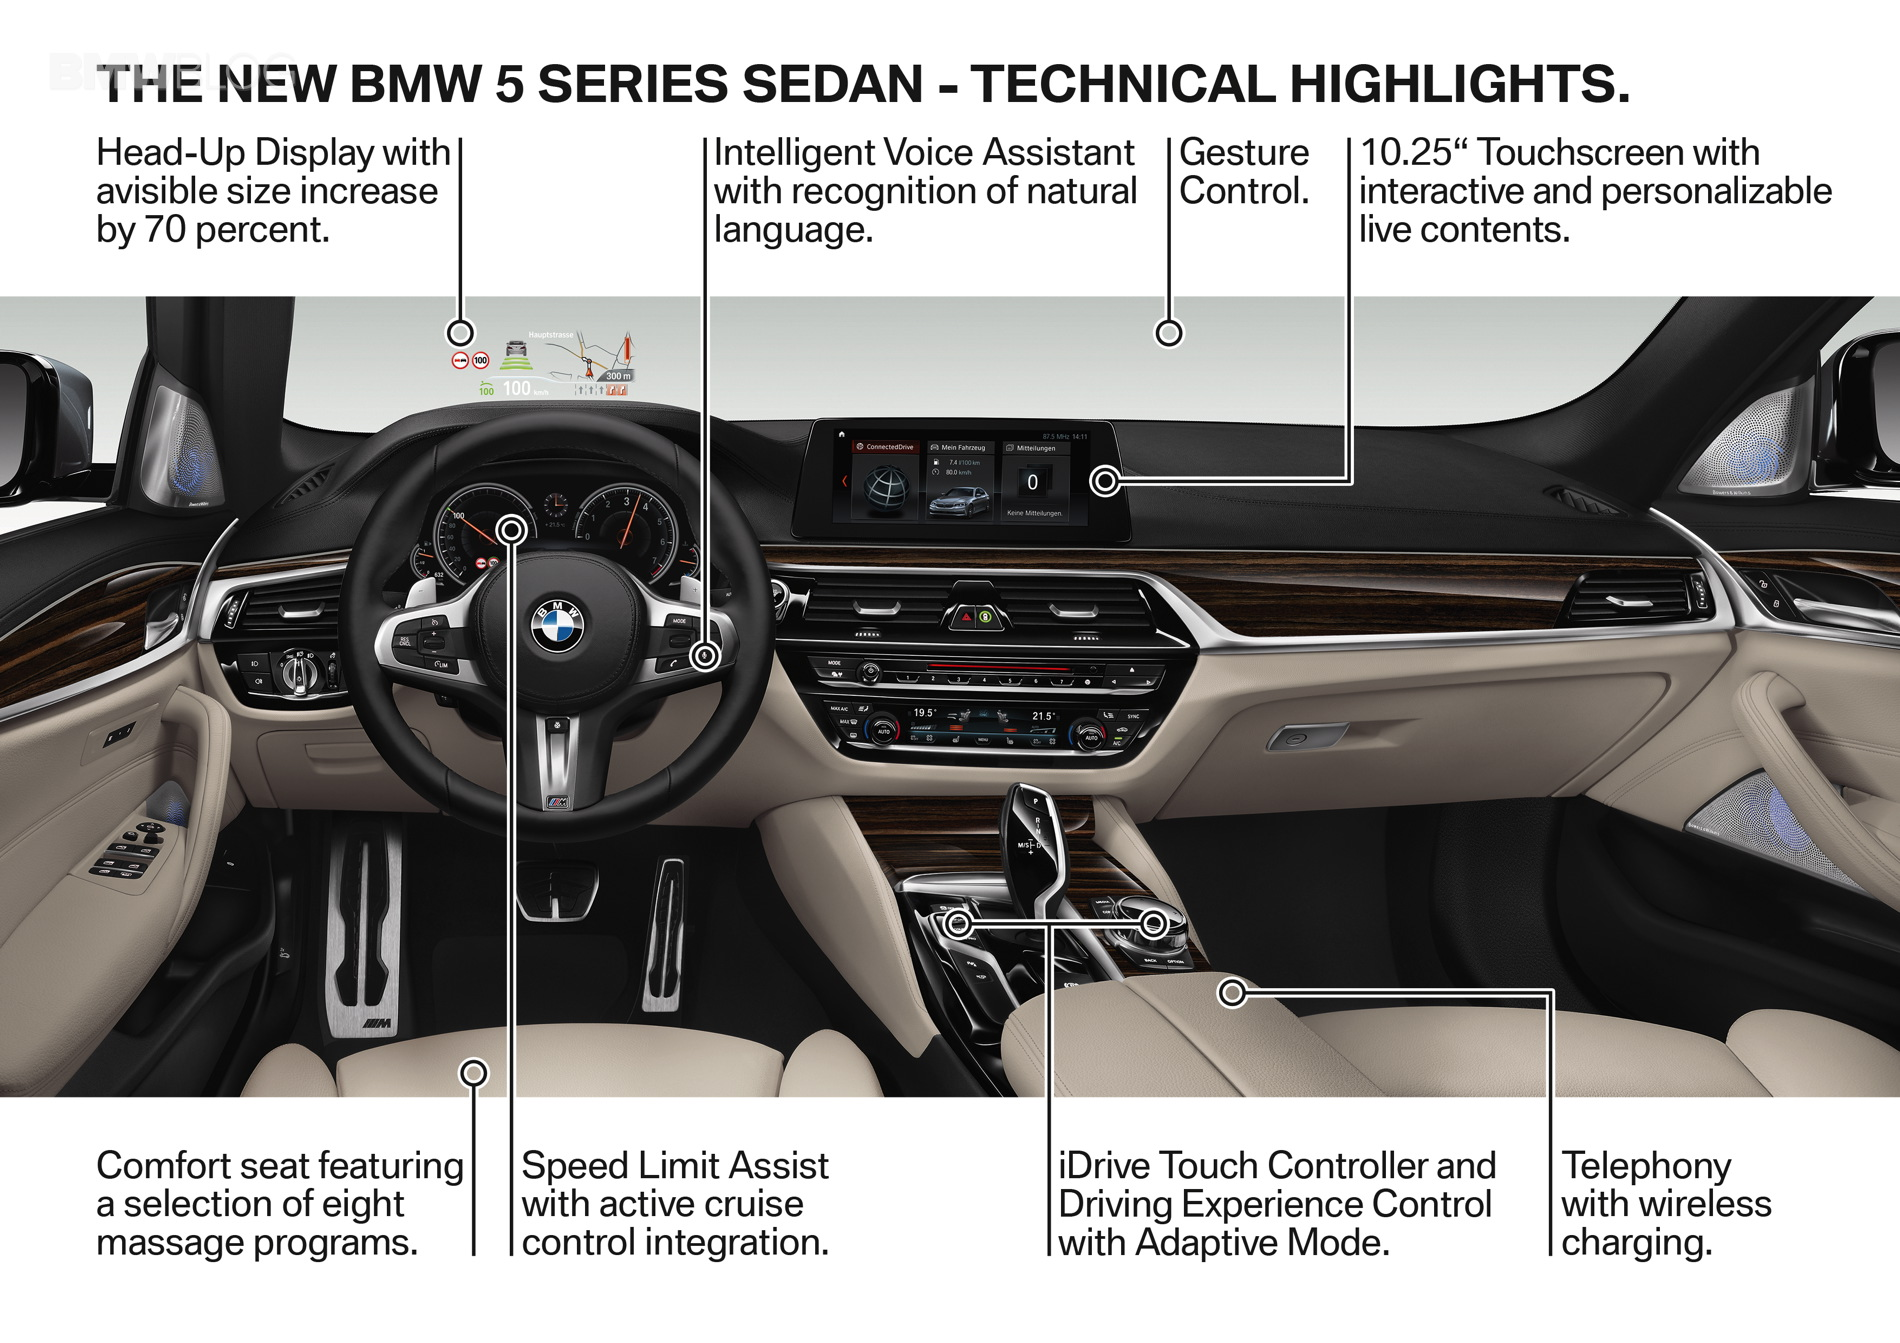 G30 BMW 5 Series technical highlights 1